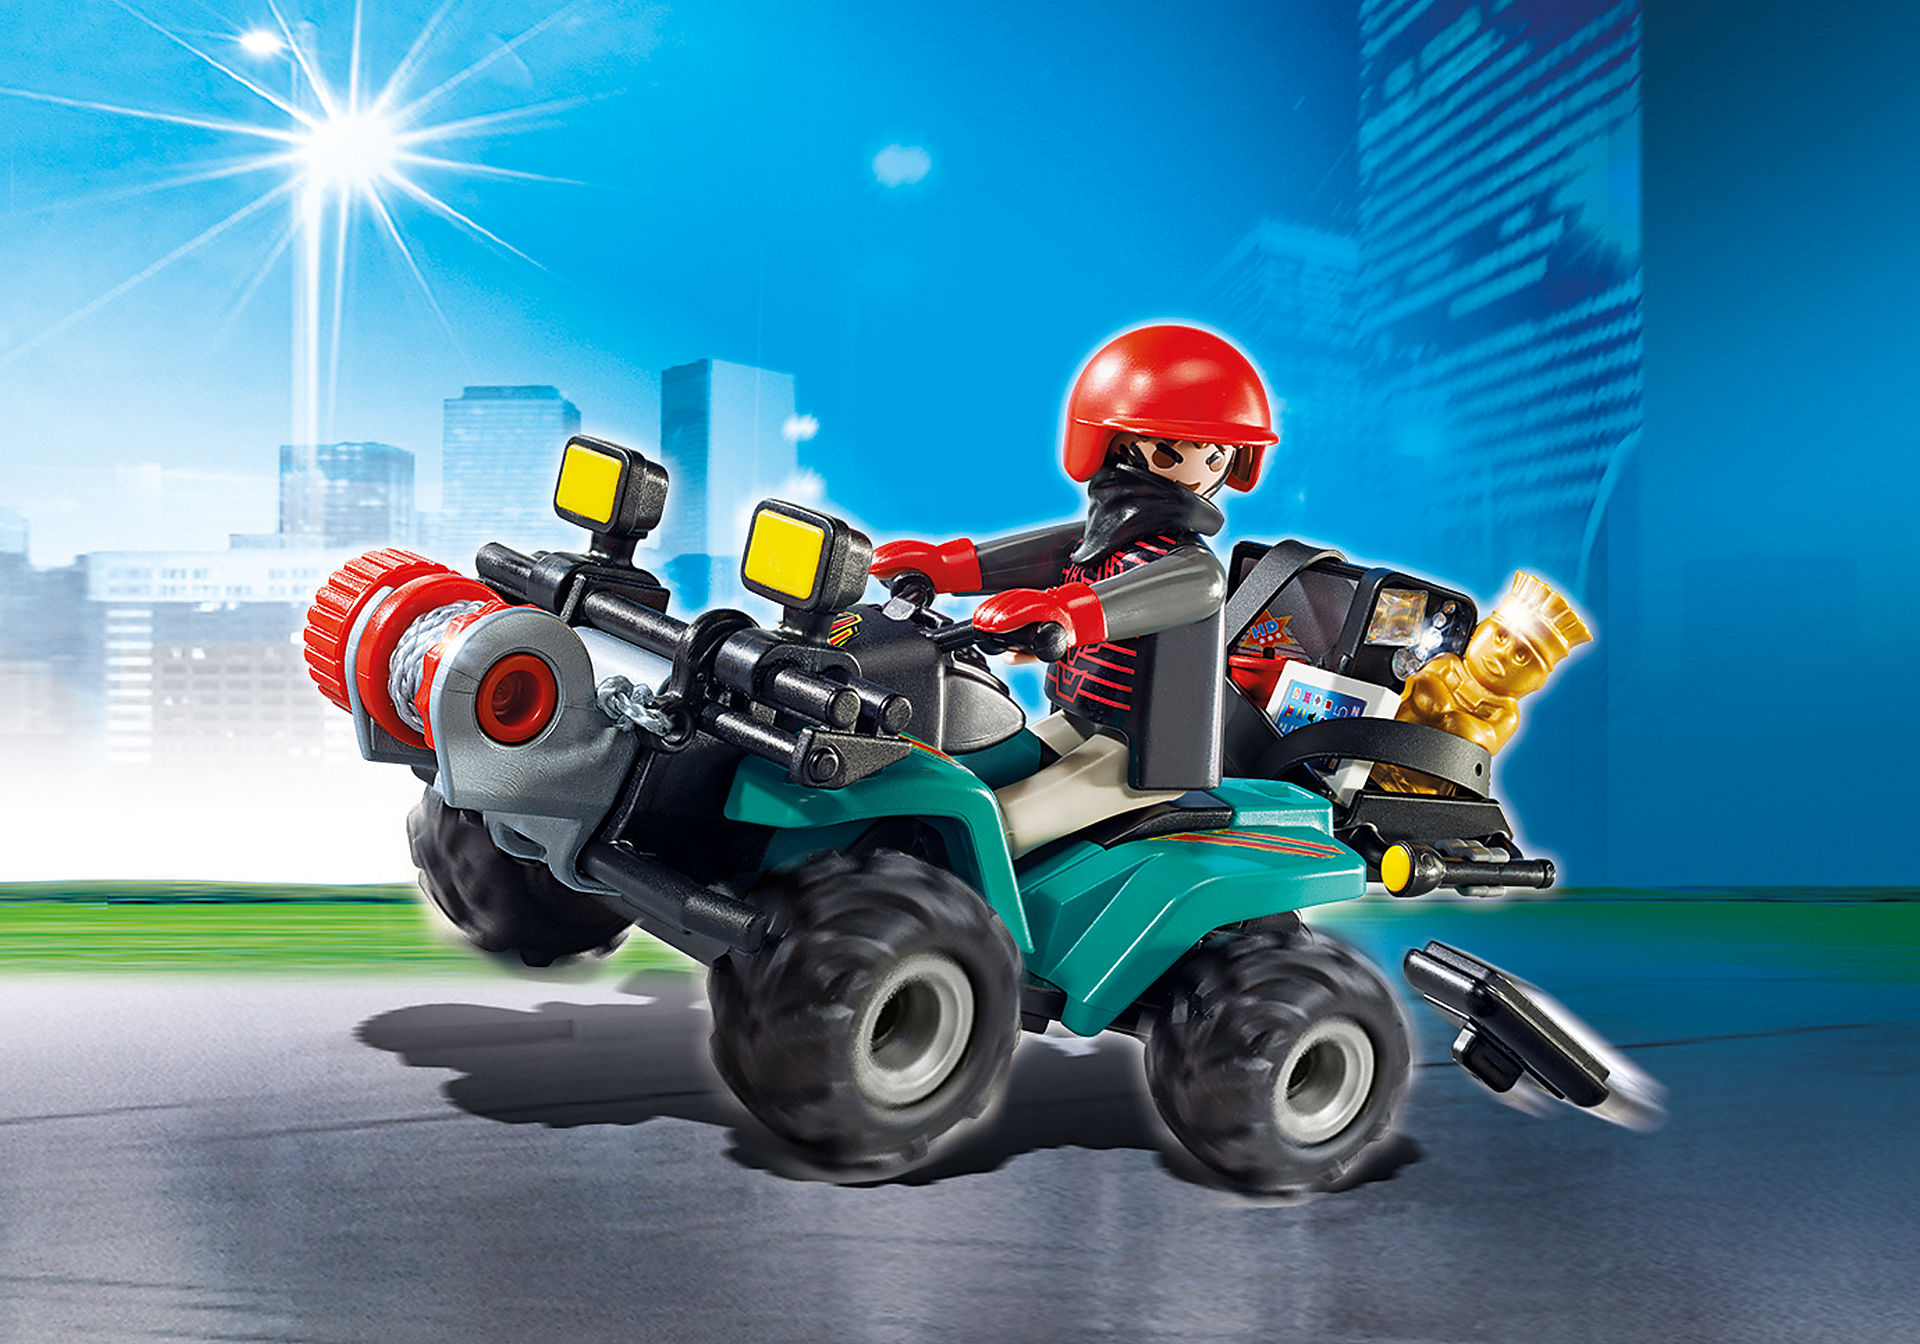 http://media.playmobil.com/i/playmobil/6879_product_detail/Robber's Quad with Loot